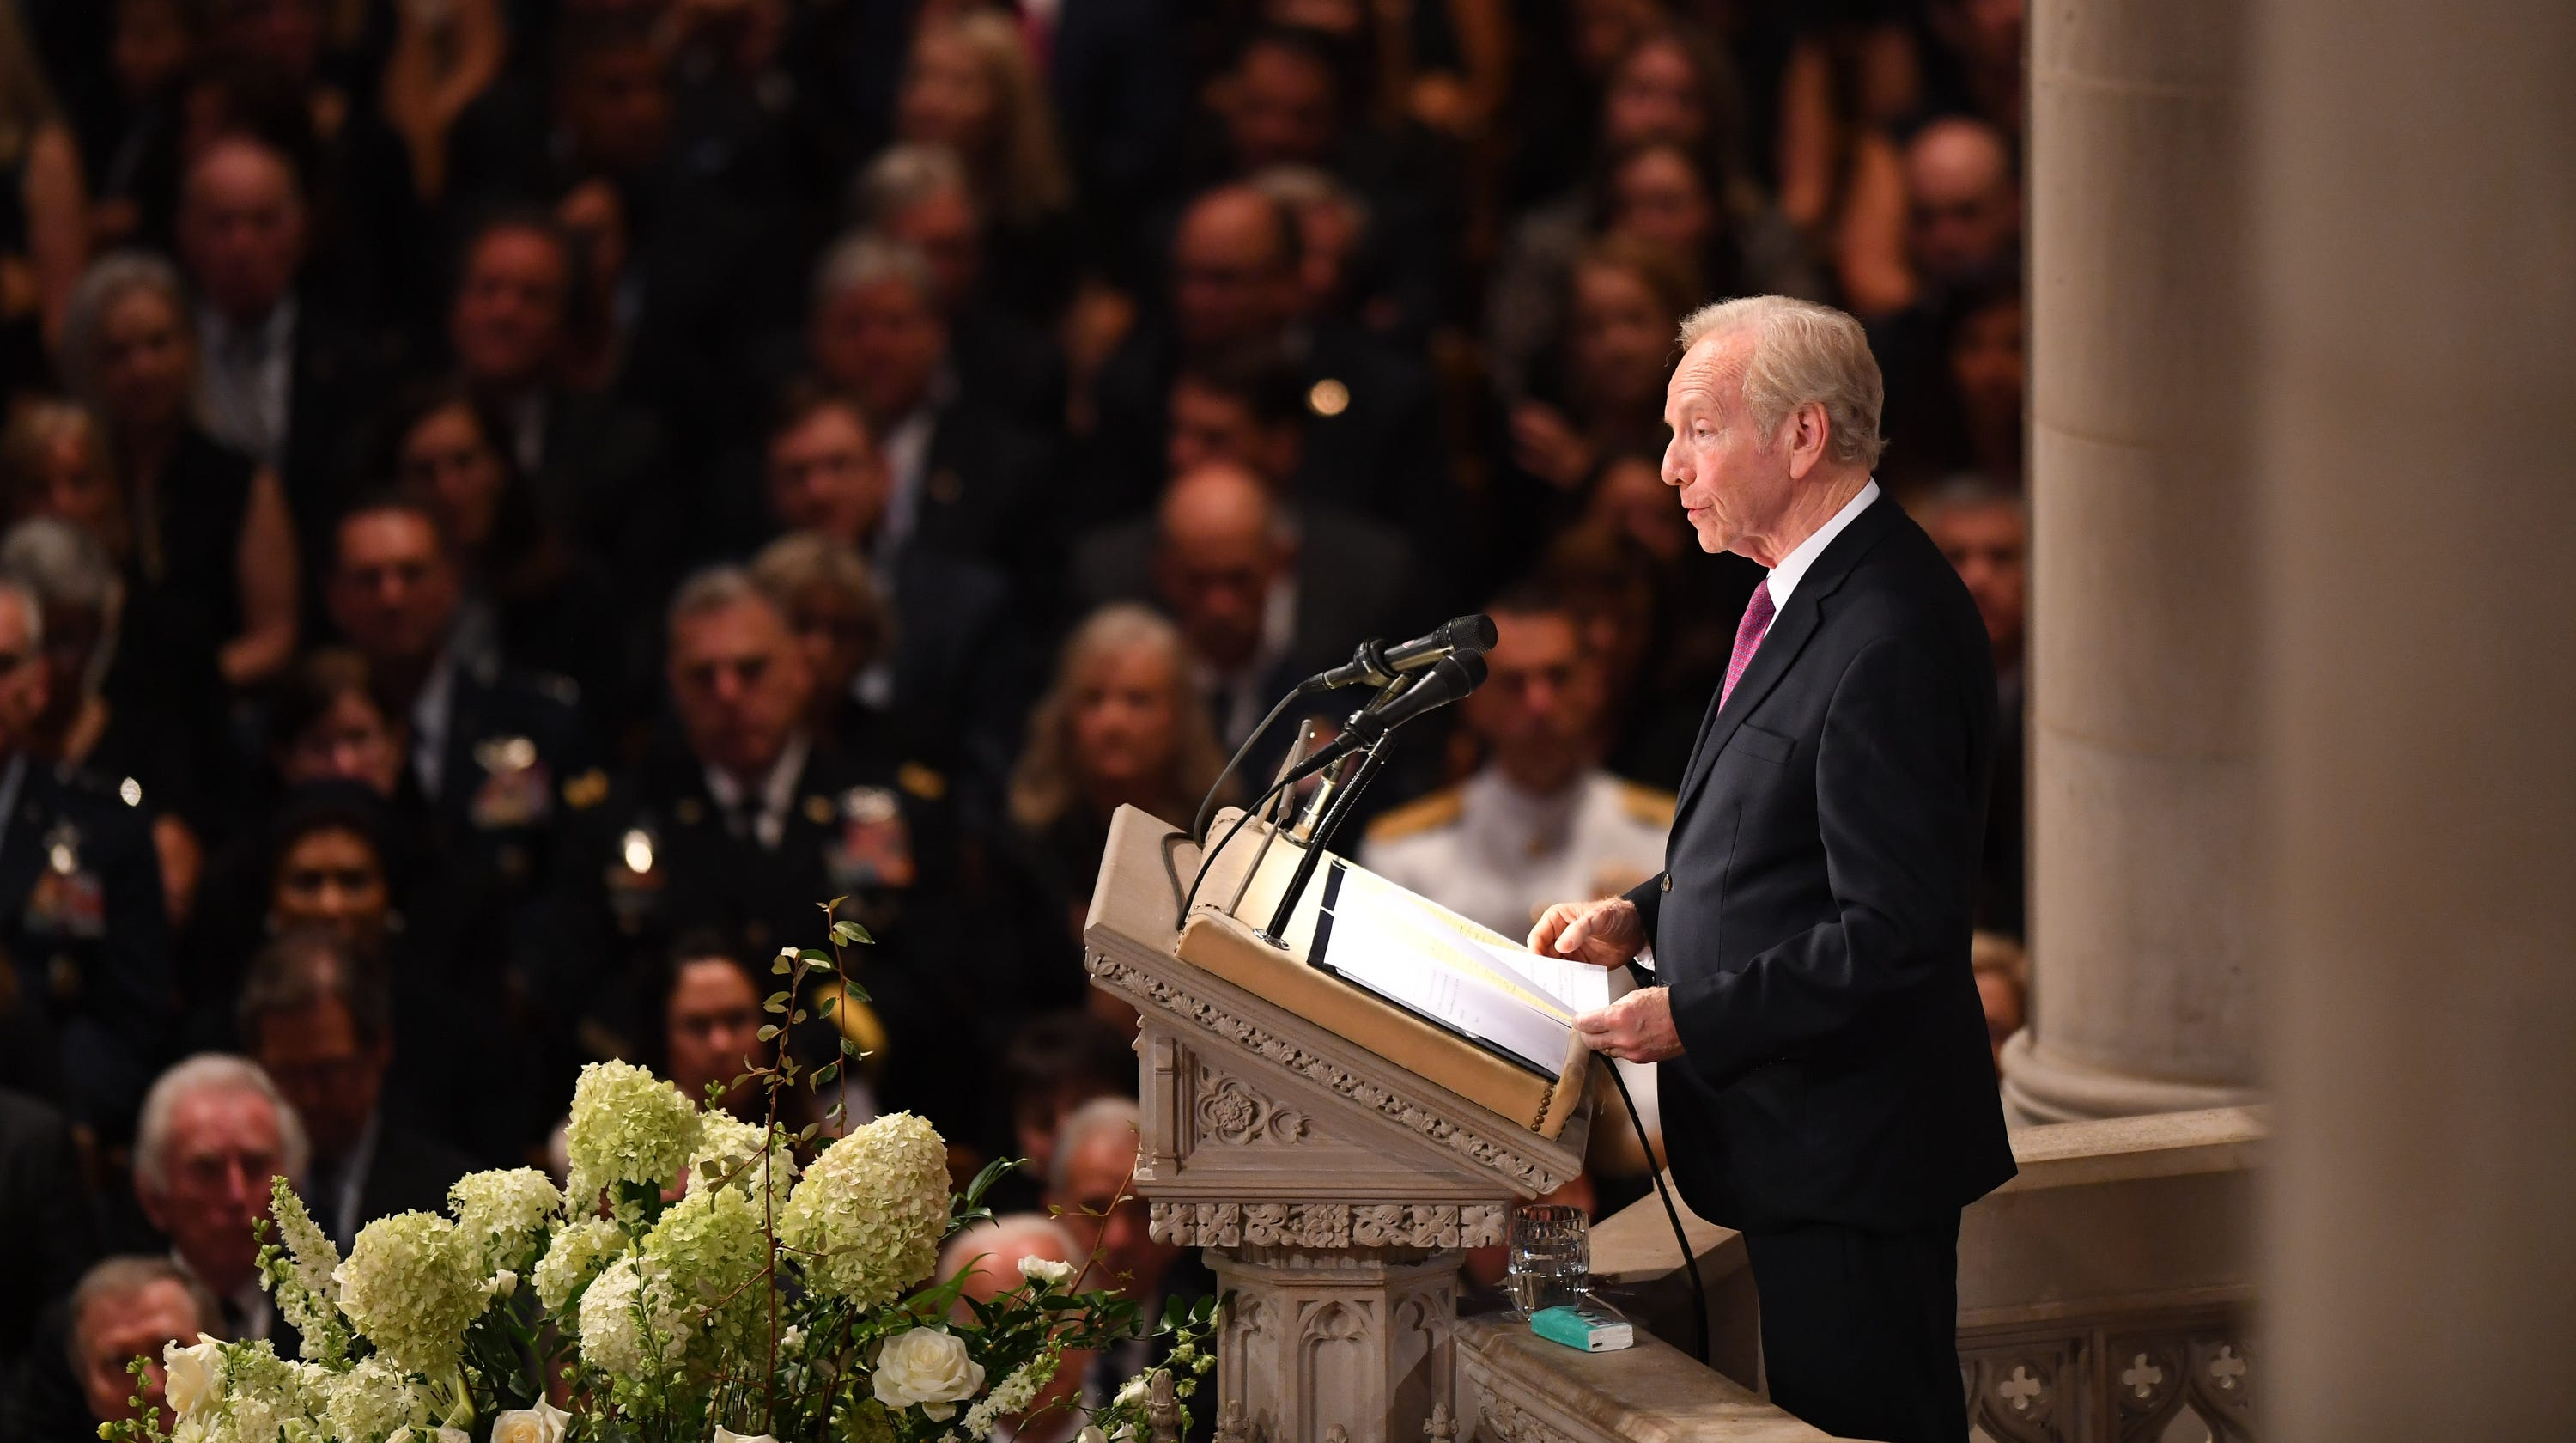 bfbfa4ec119 Read the full text of Joe Lieberman's eulogy for John McCain